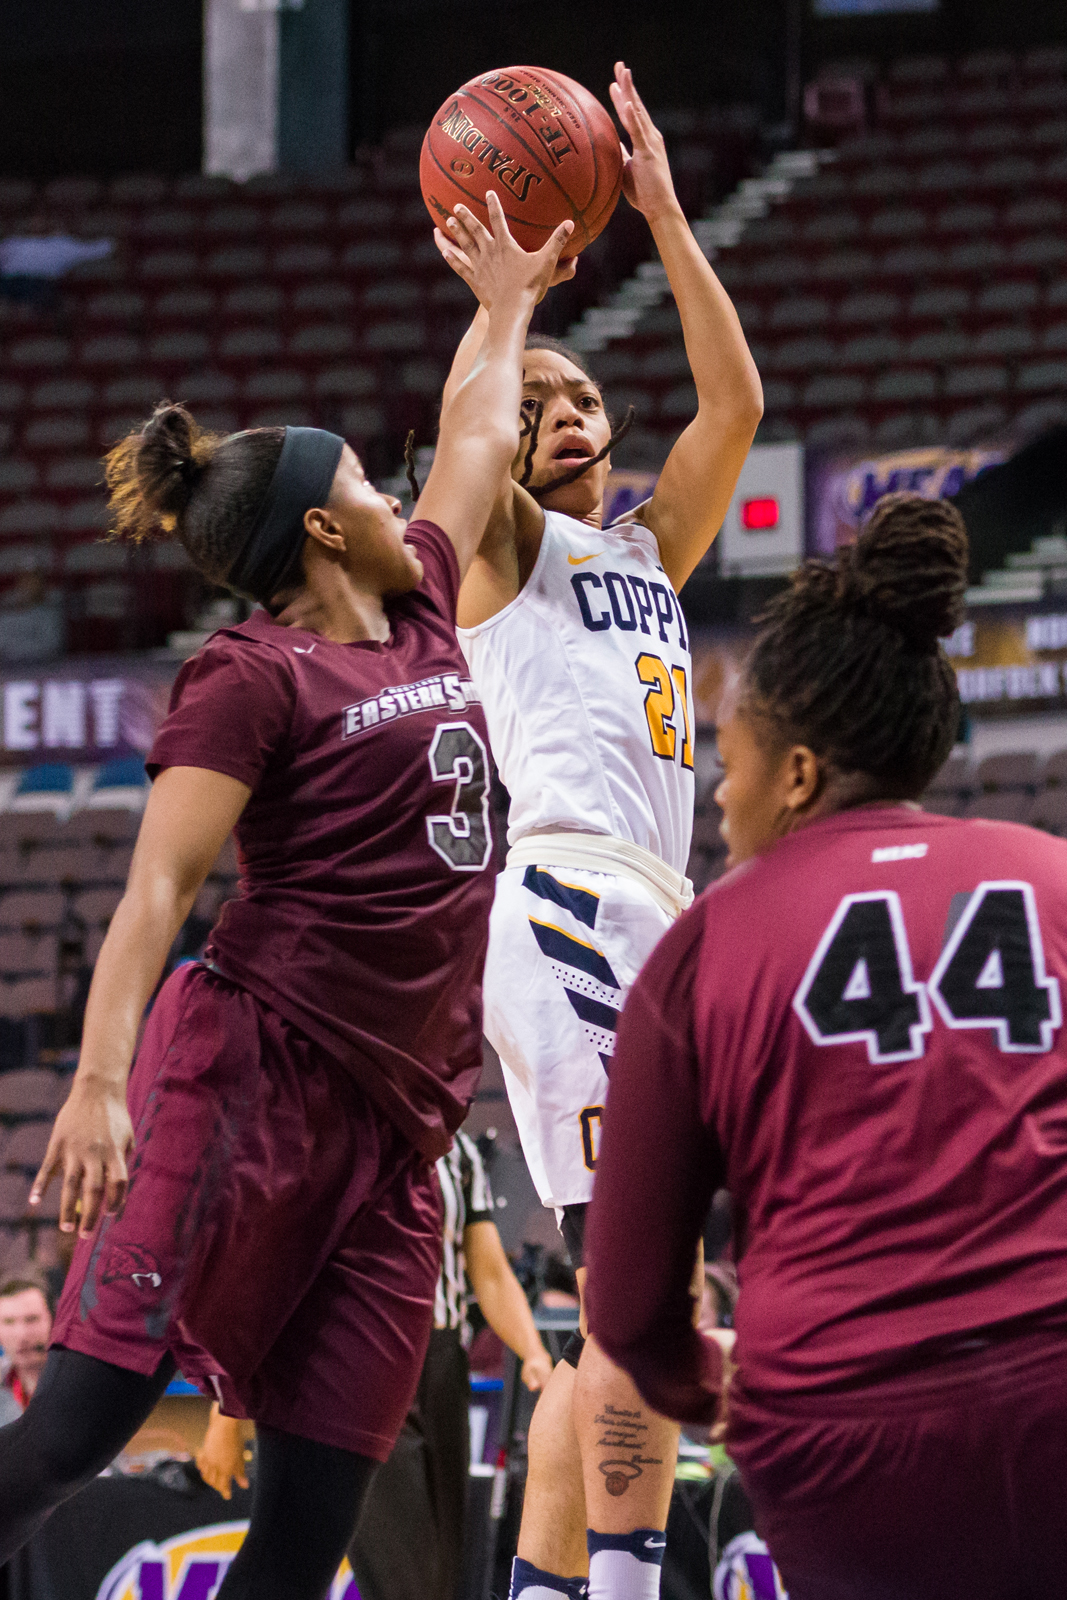 Coppin State Lady Eagles guard Keena Samuels (21) goes up for a shot against Maryland Eastern Shore Lady Hawks guard Alexus Hicks (3) during the 2017 MEAC Tournament held at the Scope Arena in Norfolk, VA. Maryland Eastern Shore defeated Coppin State 62-59.